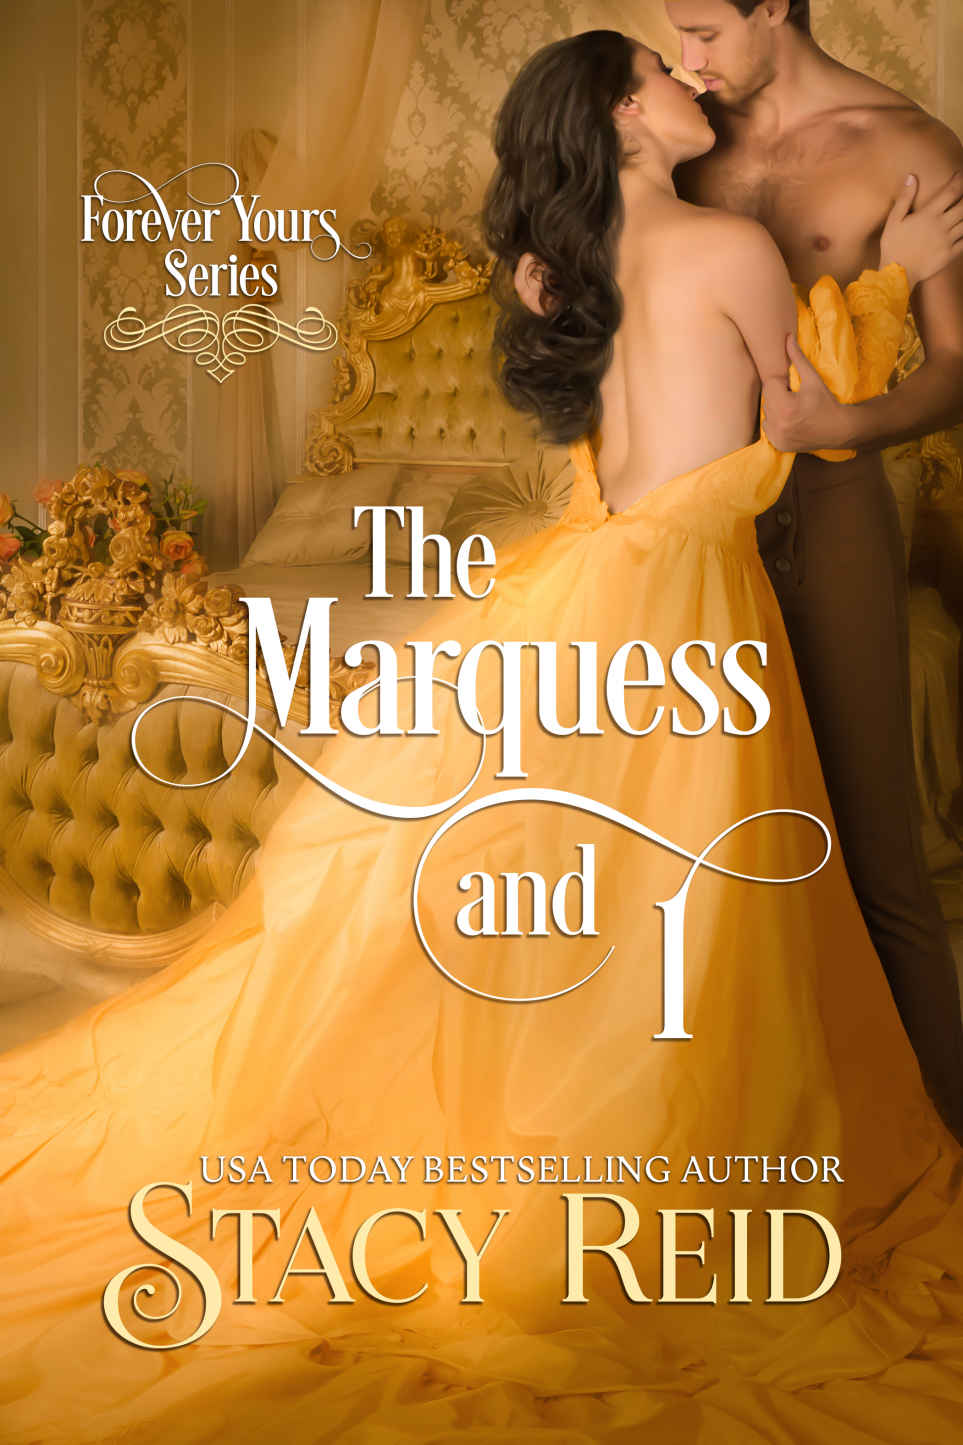 The Marquess and I by Stacy Reid